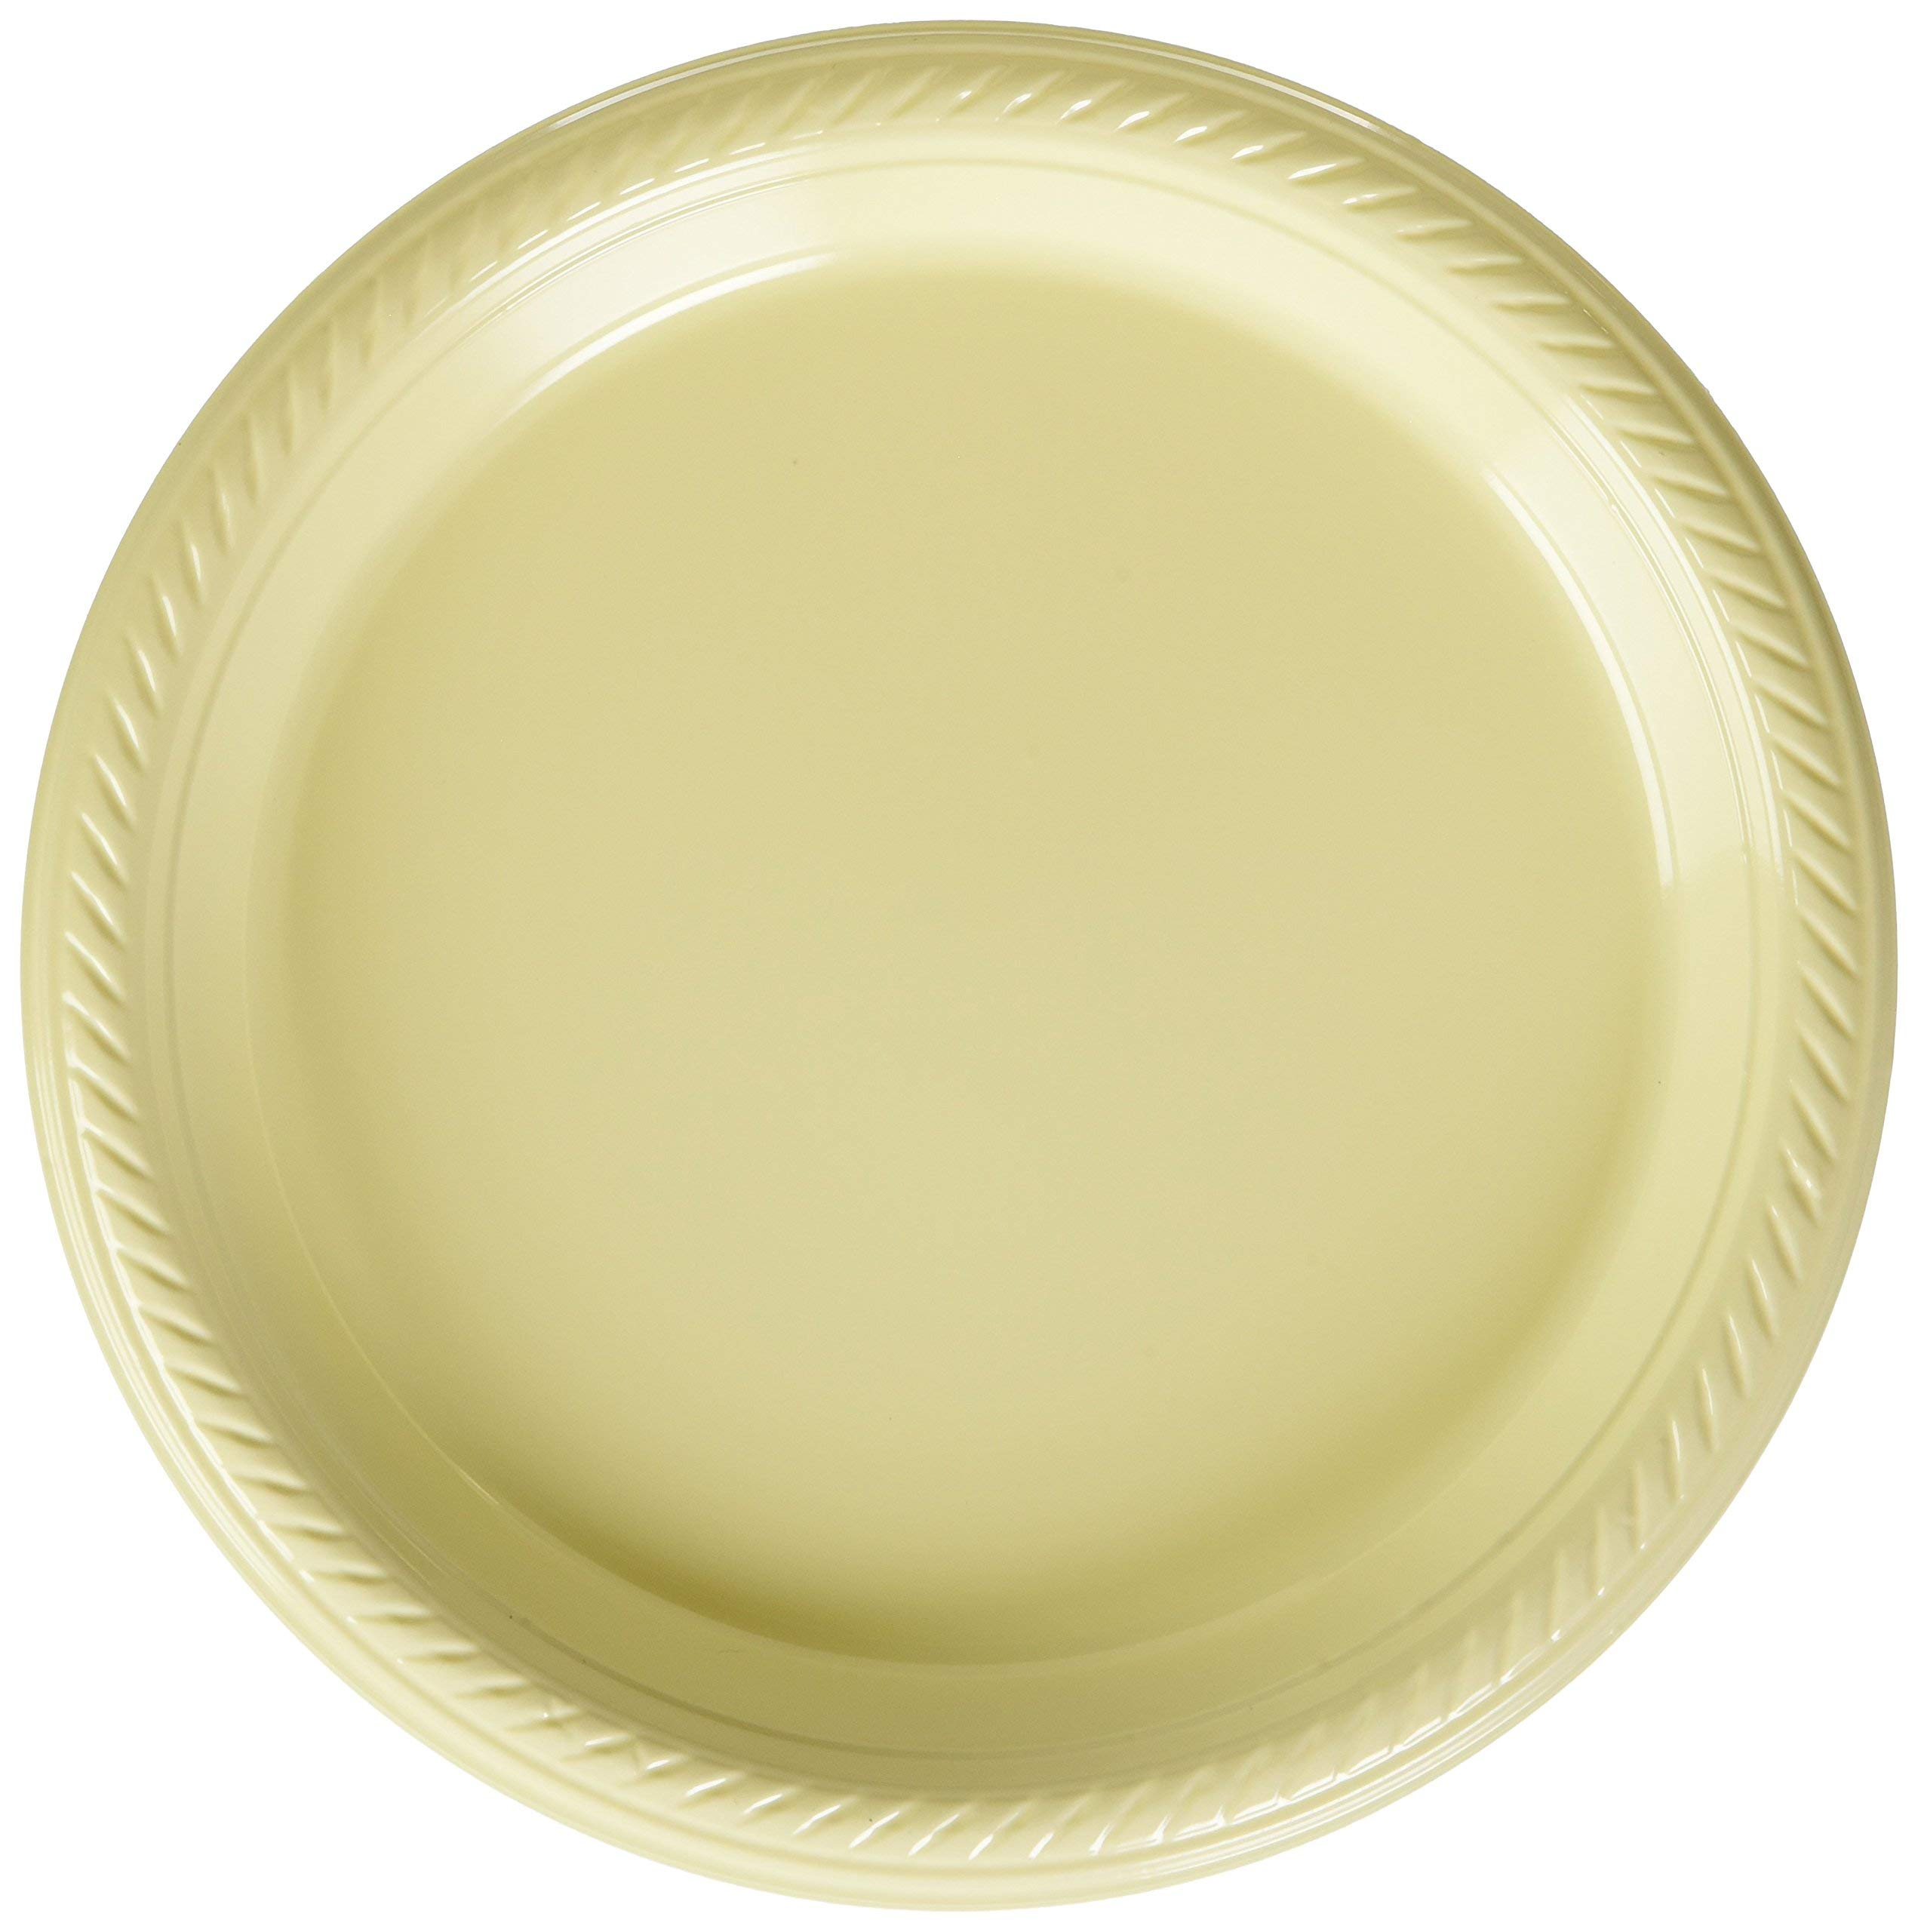 Big Party Pack Vanilla Crème Plastic Plates | 7'' | Party Supply | 300 ct. (Renewed)